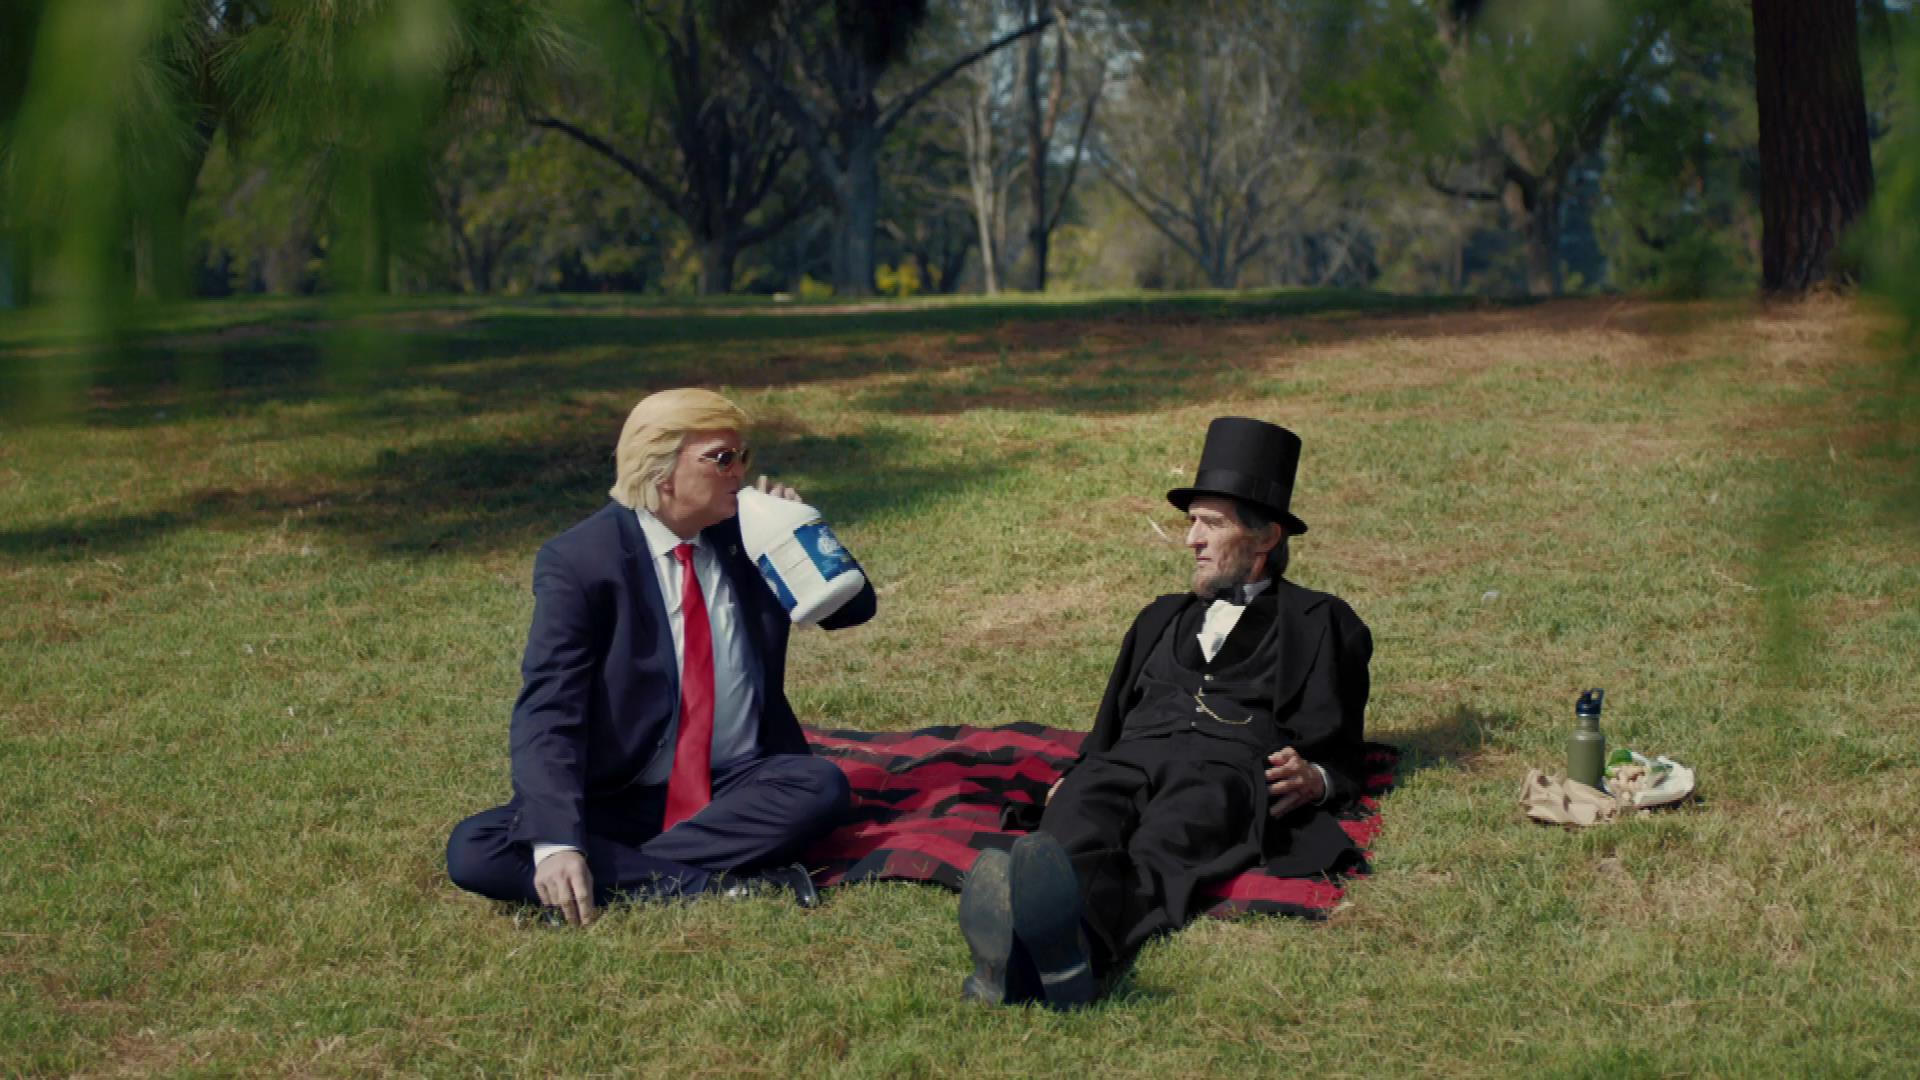 Trump joins Lincoln in fields.